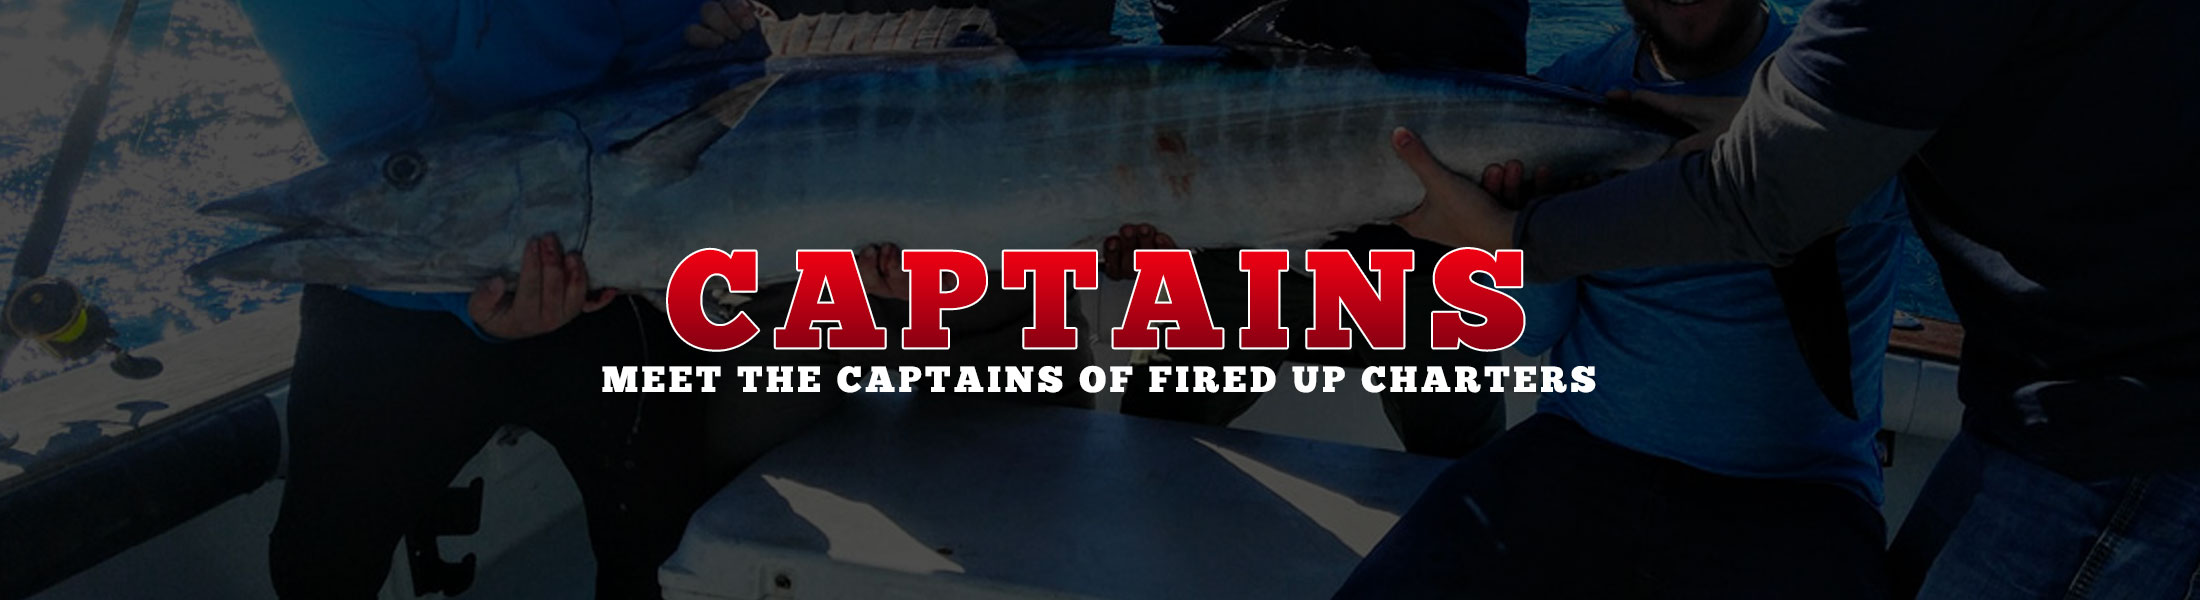 Meet the Captains of Fired Up Charters.